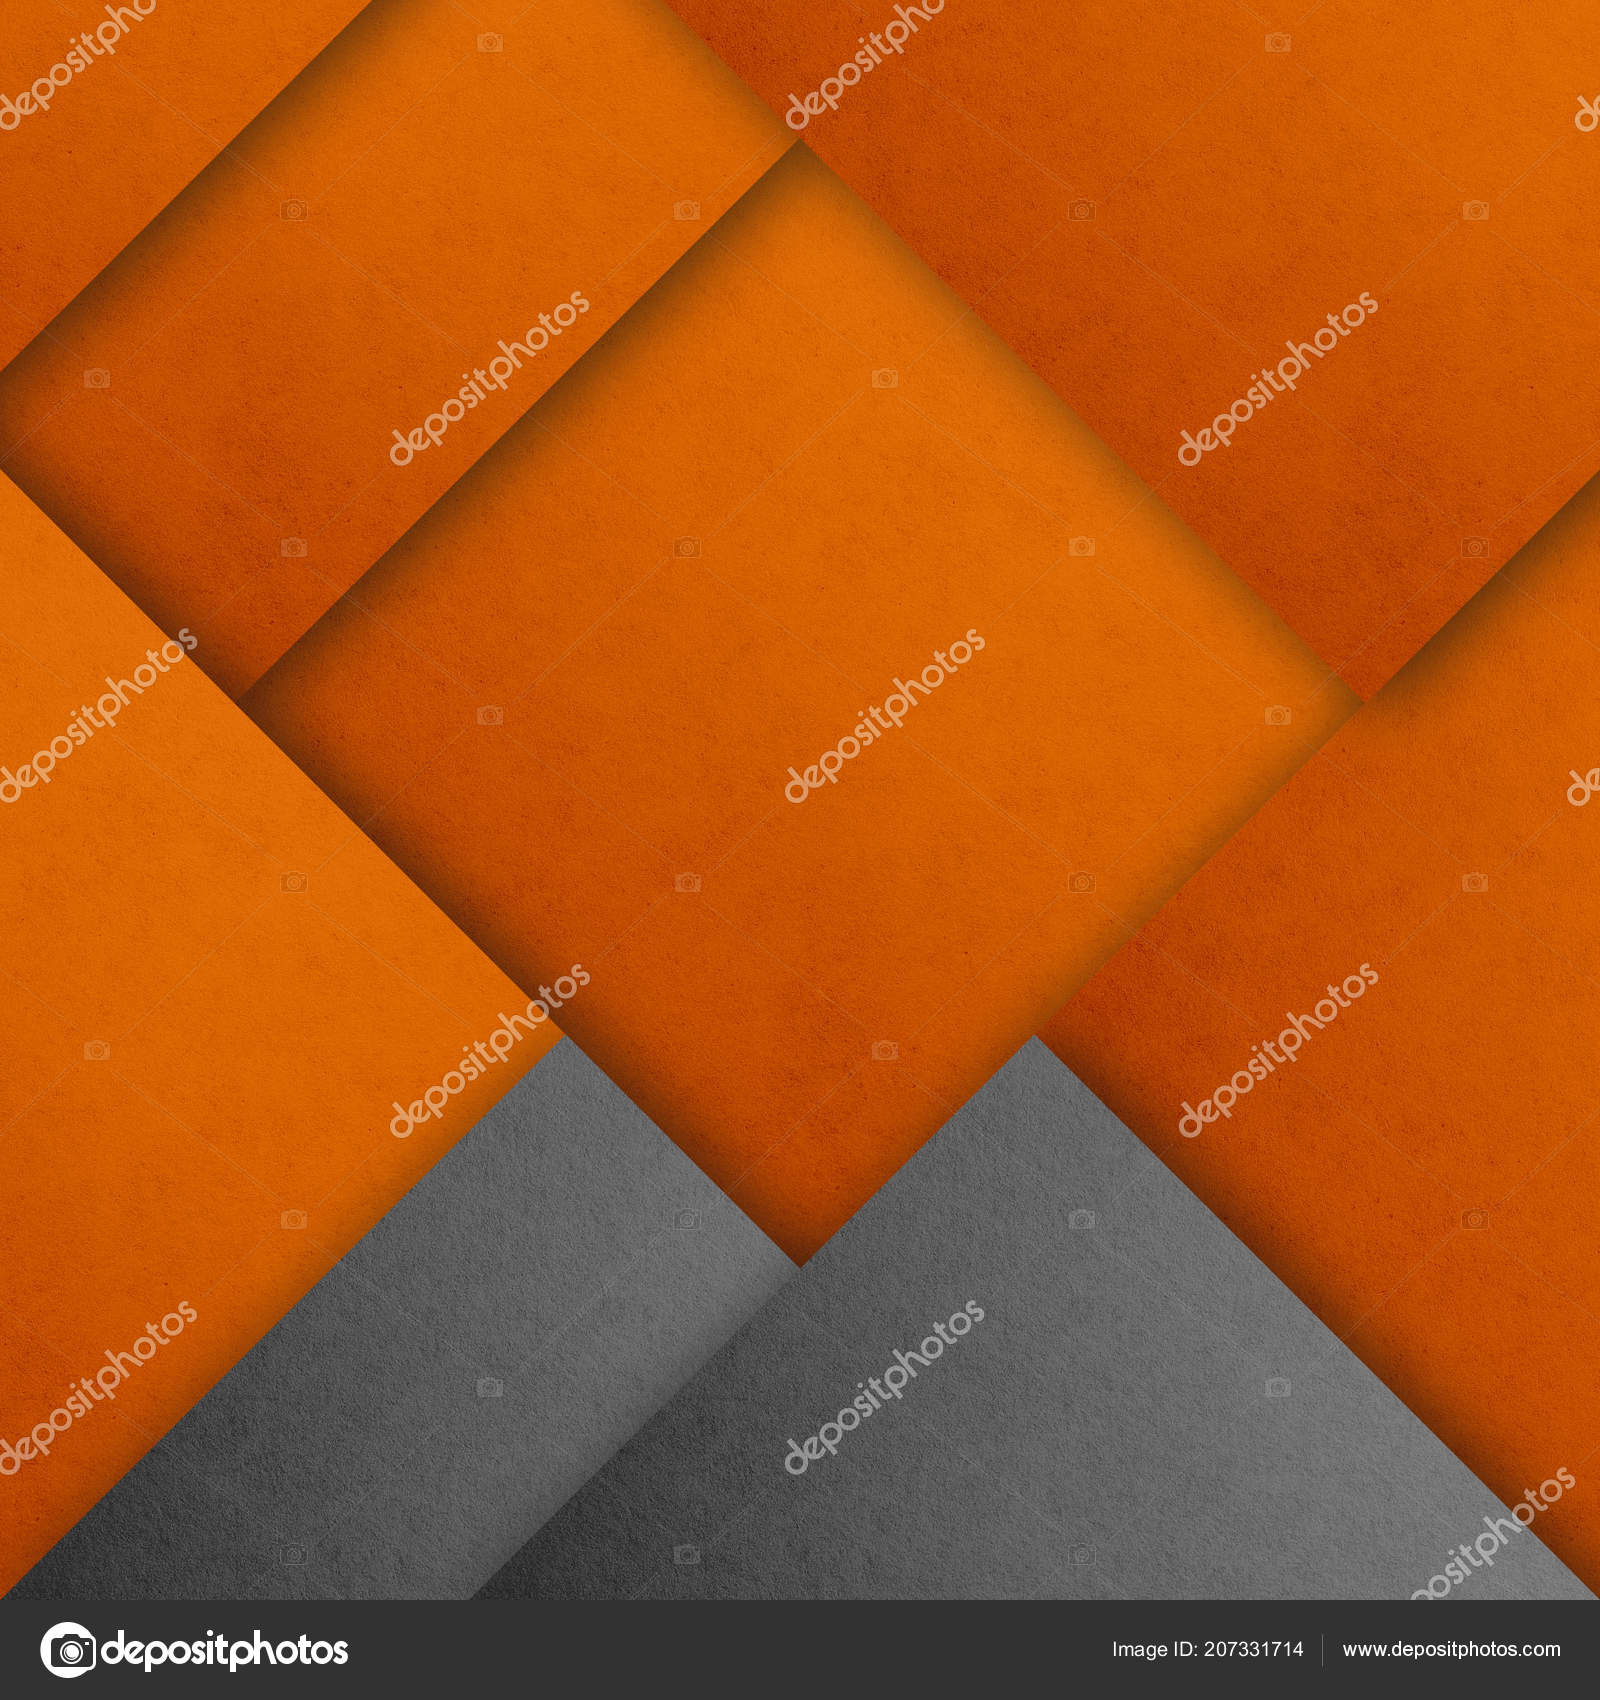 Material Design Wallpaper Real Paper Texture Gray Shades Orange Stock Photo C Inspired By The Light 207331714